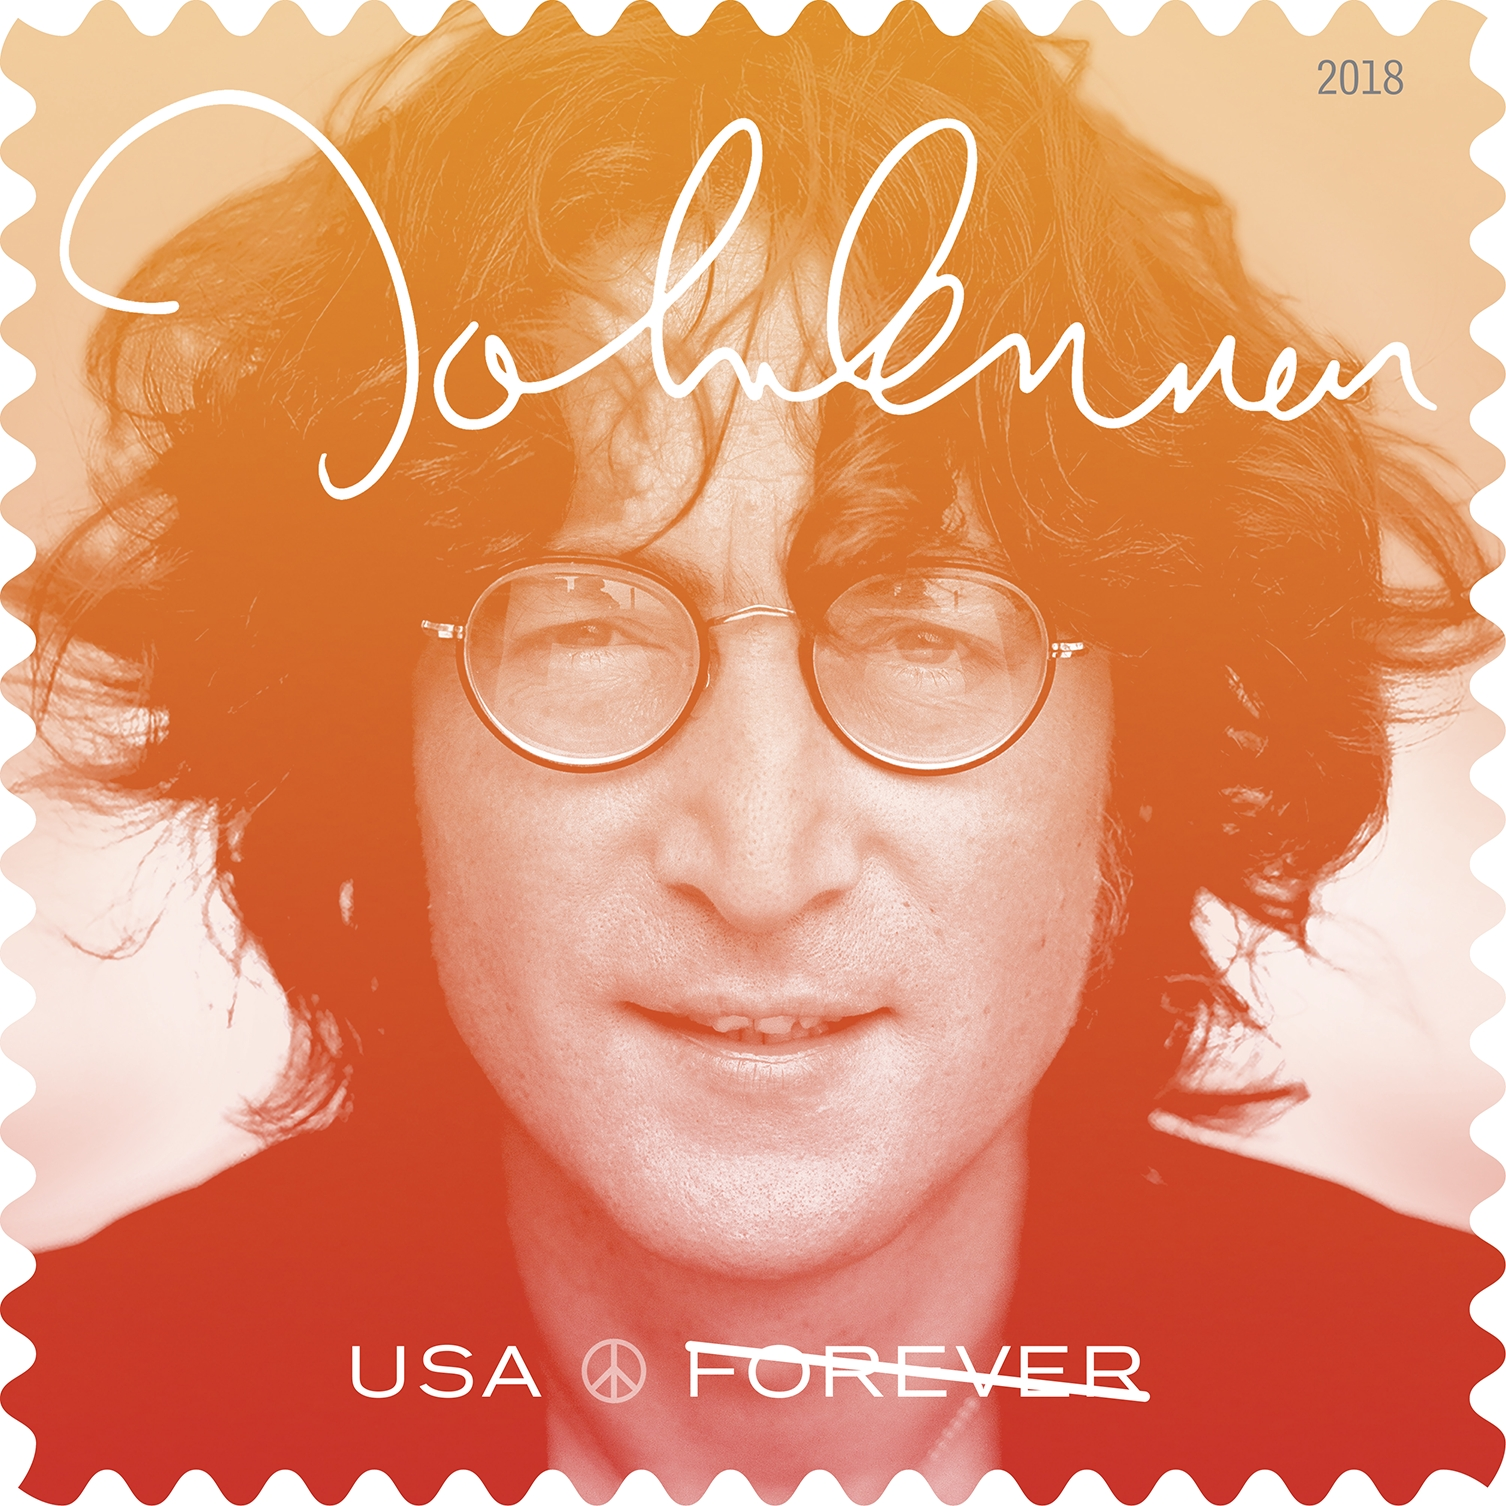 John Lennon (Music Icons series): The newest stamp in the Music Icons series honors singer and songwriter John Lennon (1940–1980), a rock 'n' roll hero successful both as a founding member of the Beatles and as a solo artist. (USPS)